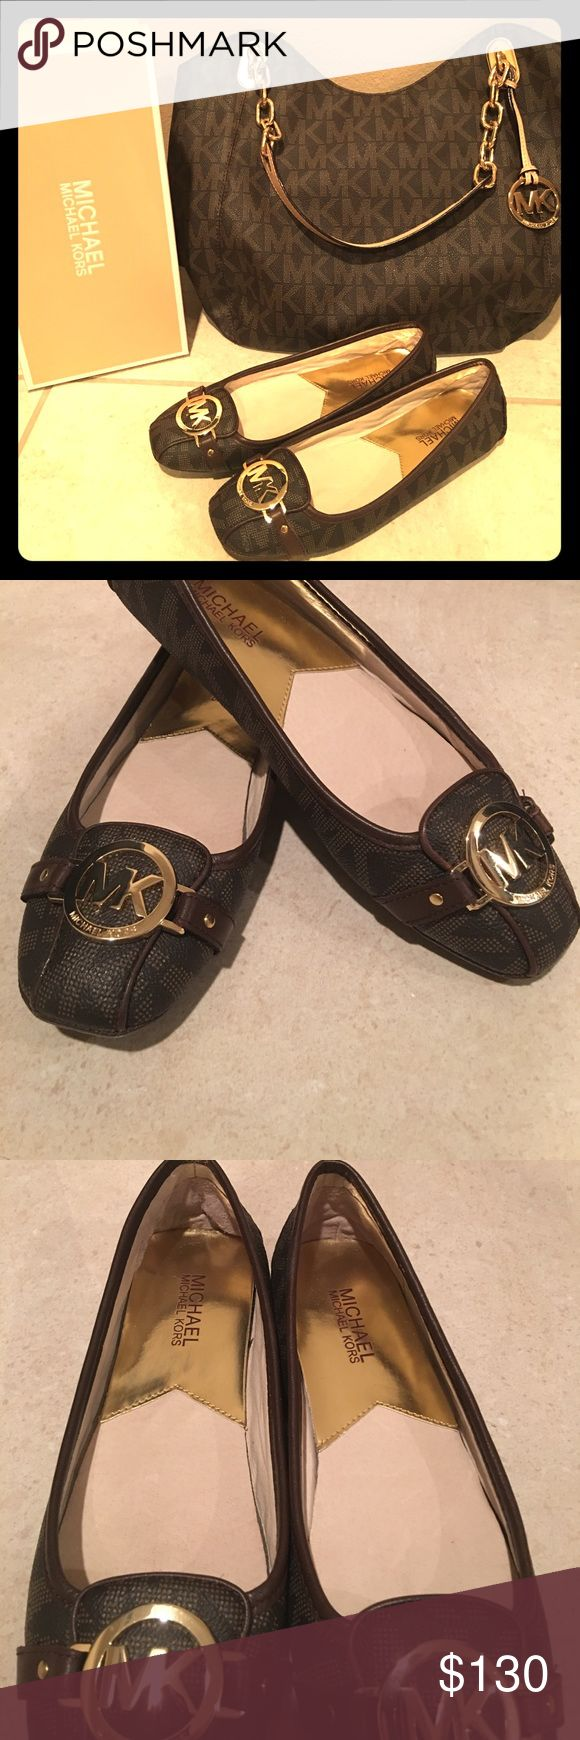 Michael Kors Brown Futon flats Used only a few times they are like new! In excellent condition they are a size 7 1/2 and are too tight for me therefore I am selling them! They are beautiful but they are painful for me! Price is negotiable! Please use offer button and no low balling please! MICHAEL Michael Kors Shoes Flats & Loafers